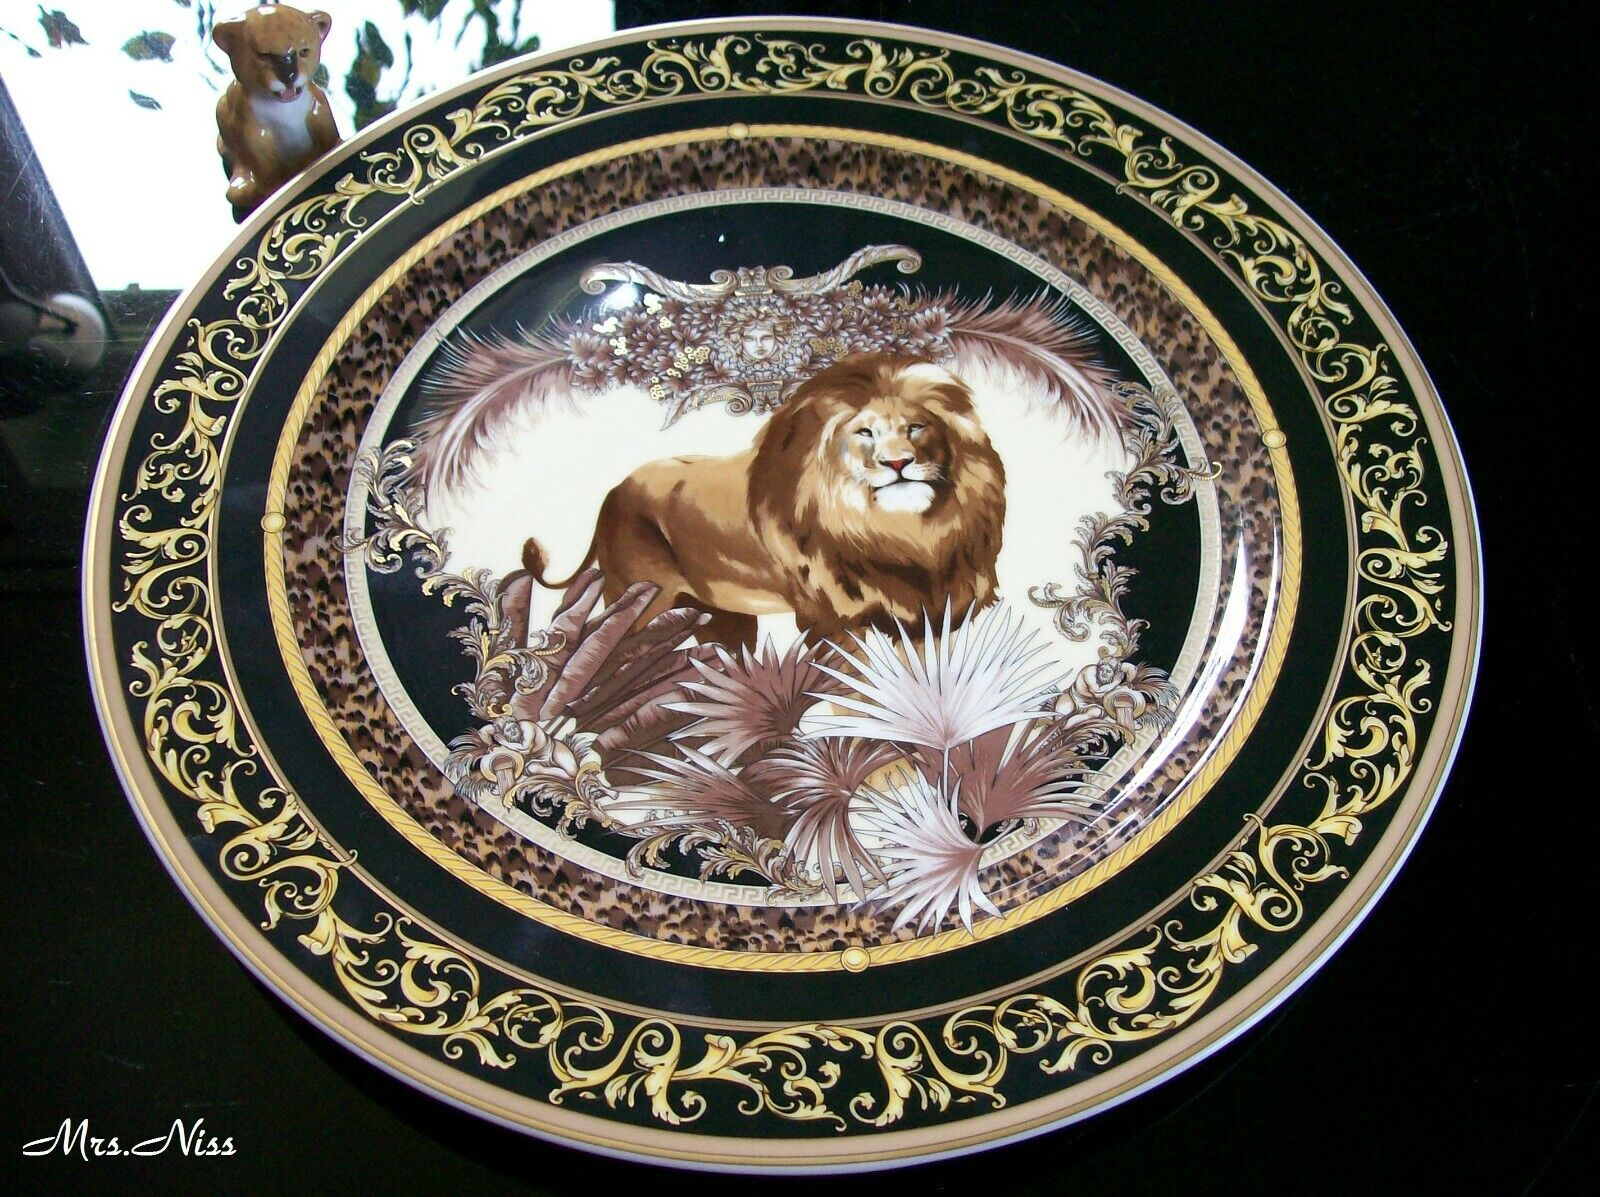 ROSENTHAL VERSACE le régne animal William place assiettes assiettes 30 cm 1 A NEUF